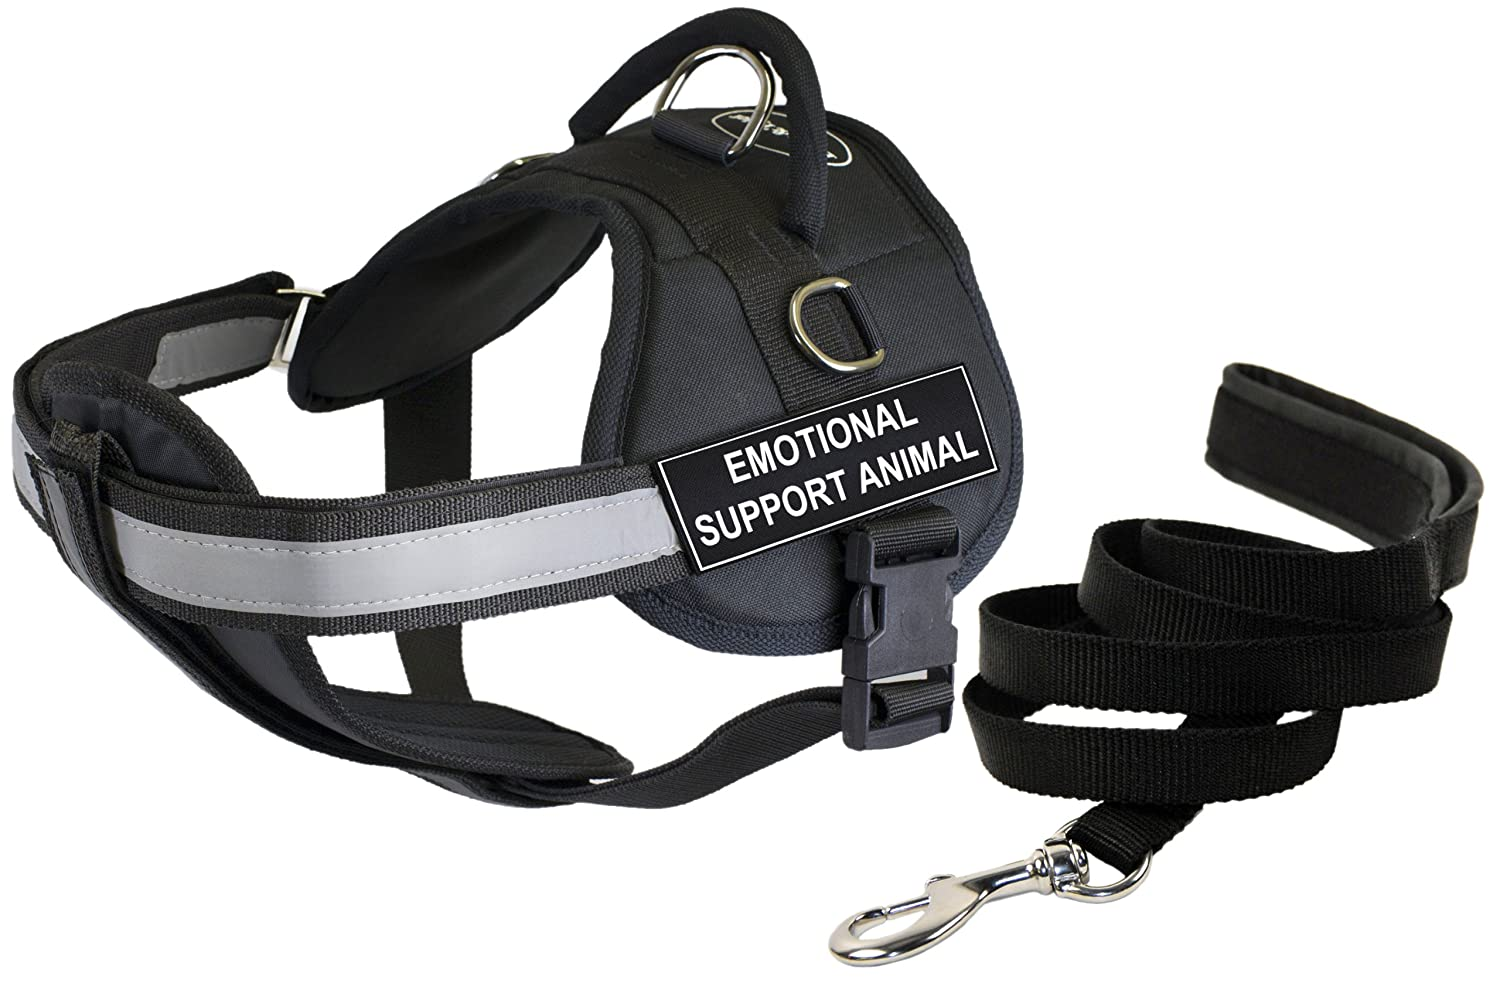 Dean and Tyler Bundle DT Works Harness w Padded Chest, Emotional Support Animal, XSmall (21 -26 ) + Padded Puppy Leash, 6 FT Stainless Snap Black